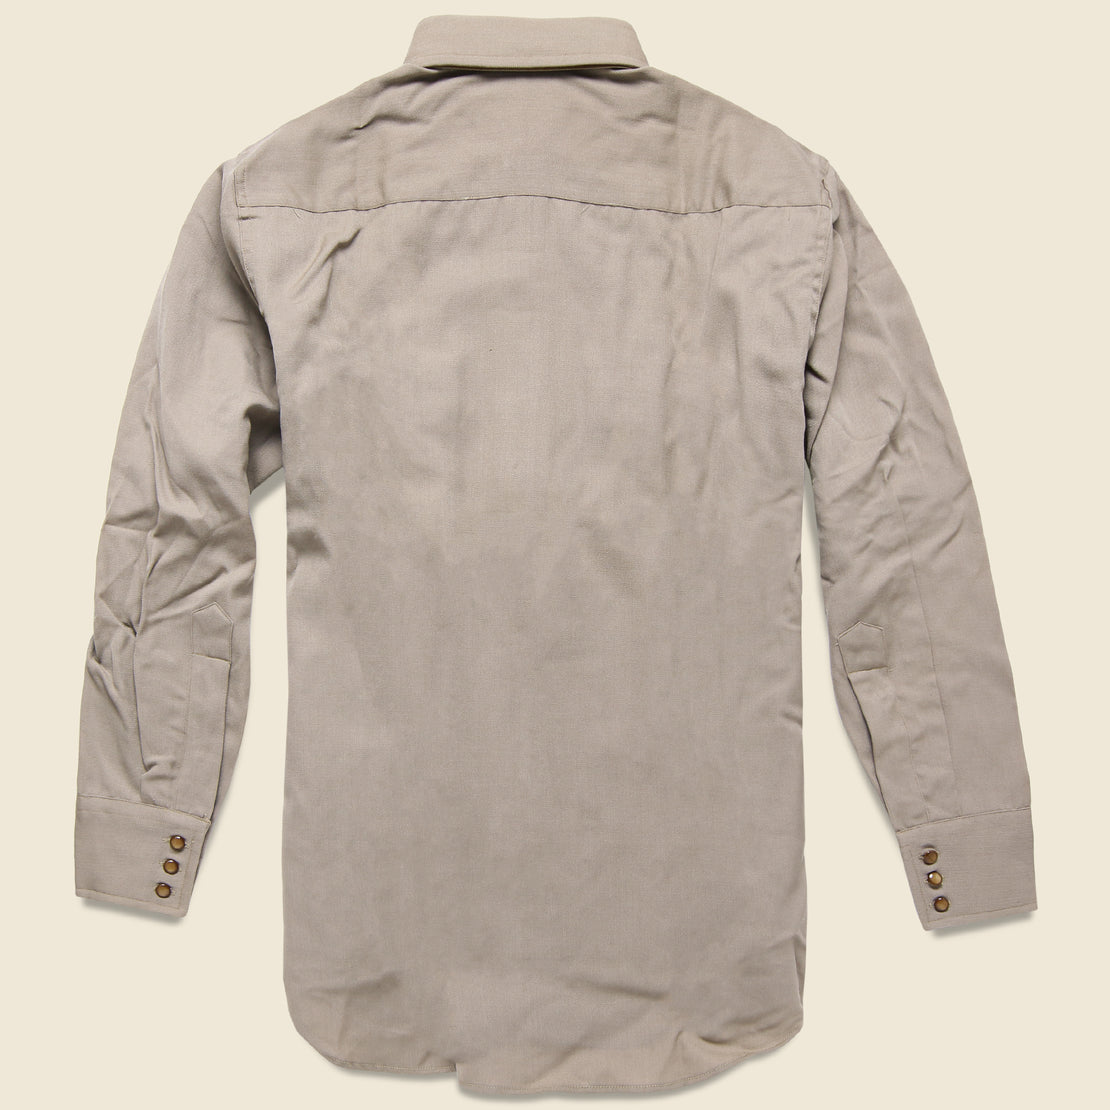 Deadstock Western Shirt - Grey